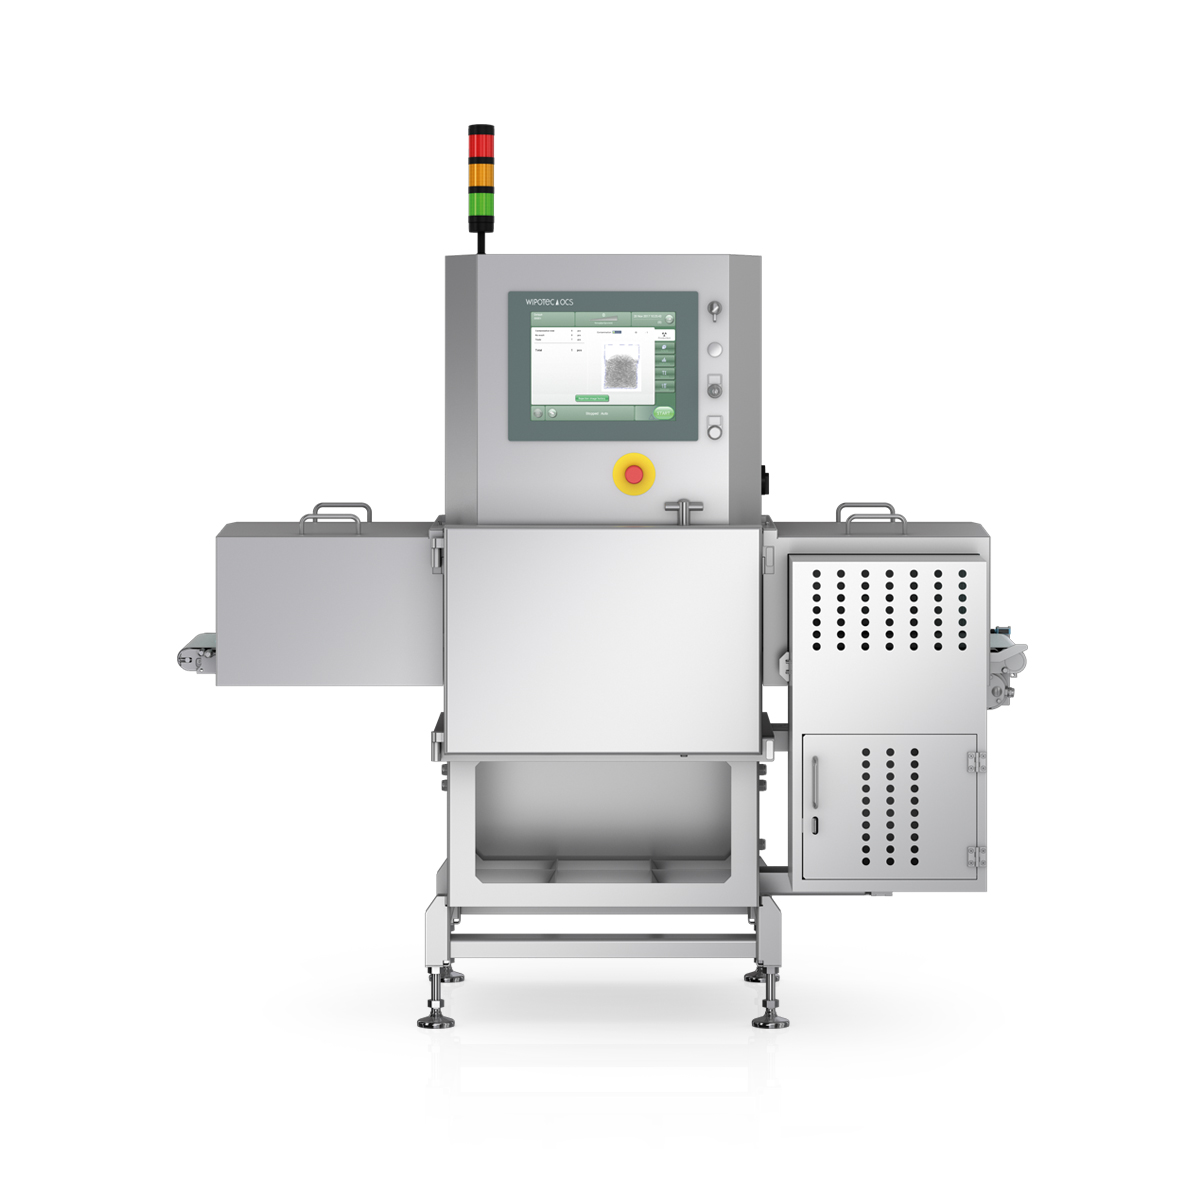 x-ray-inspection-system-sc-e-4000-front-view